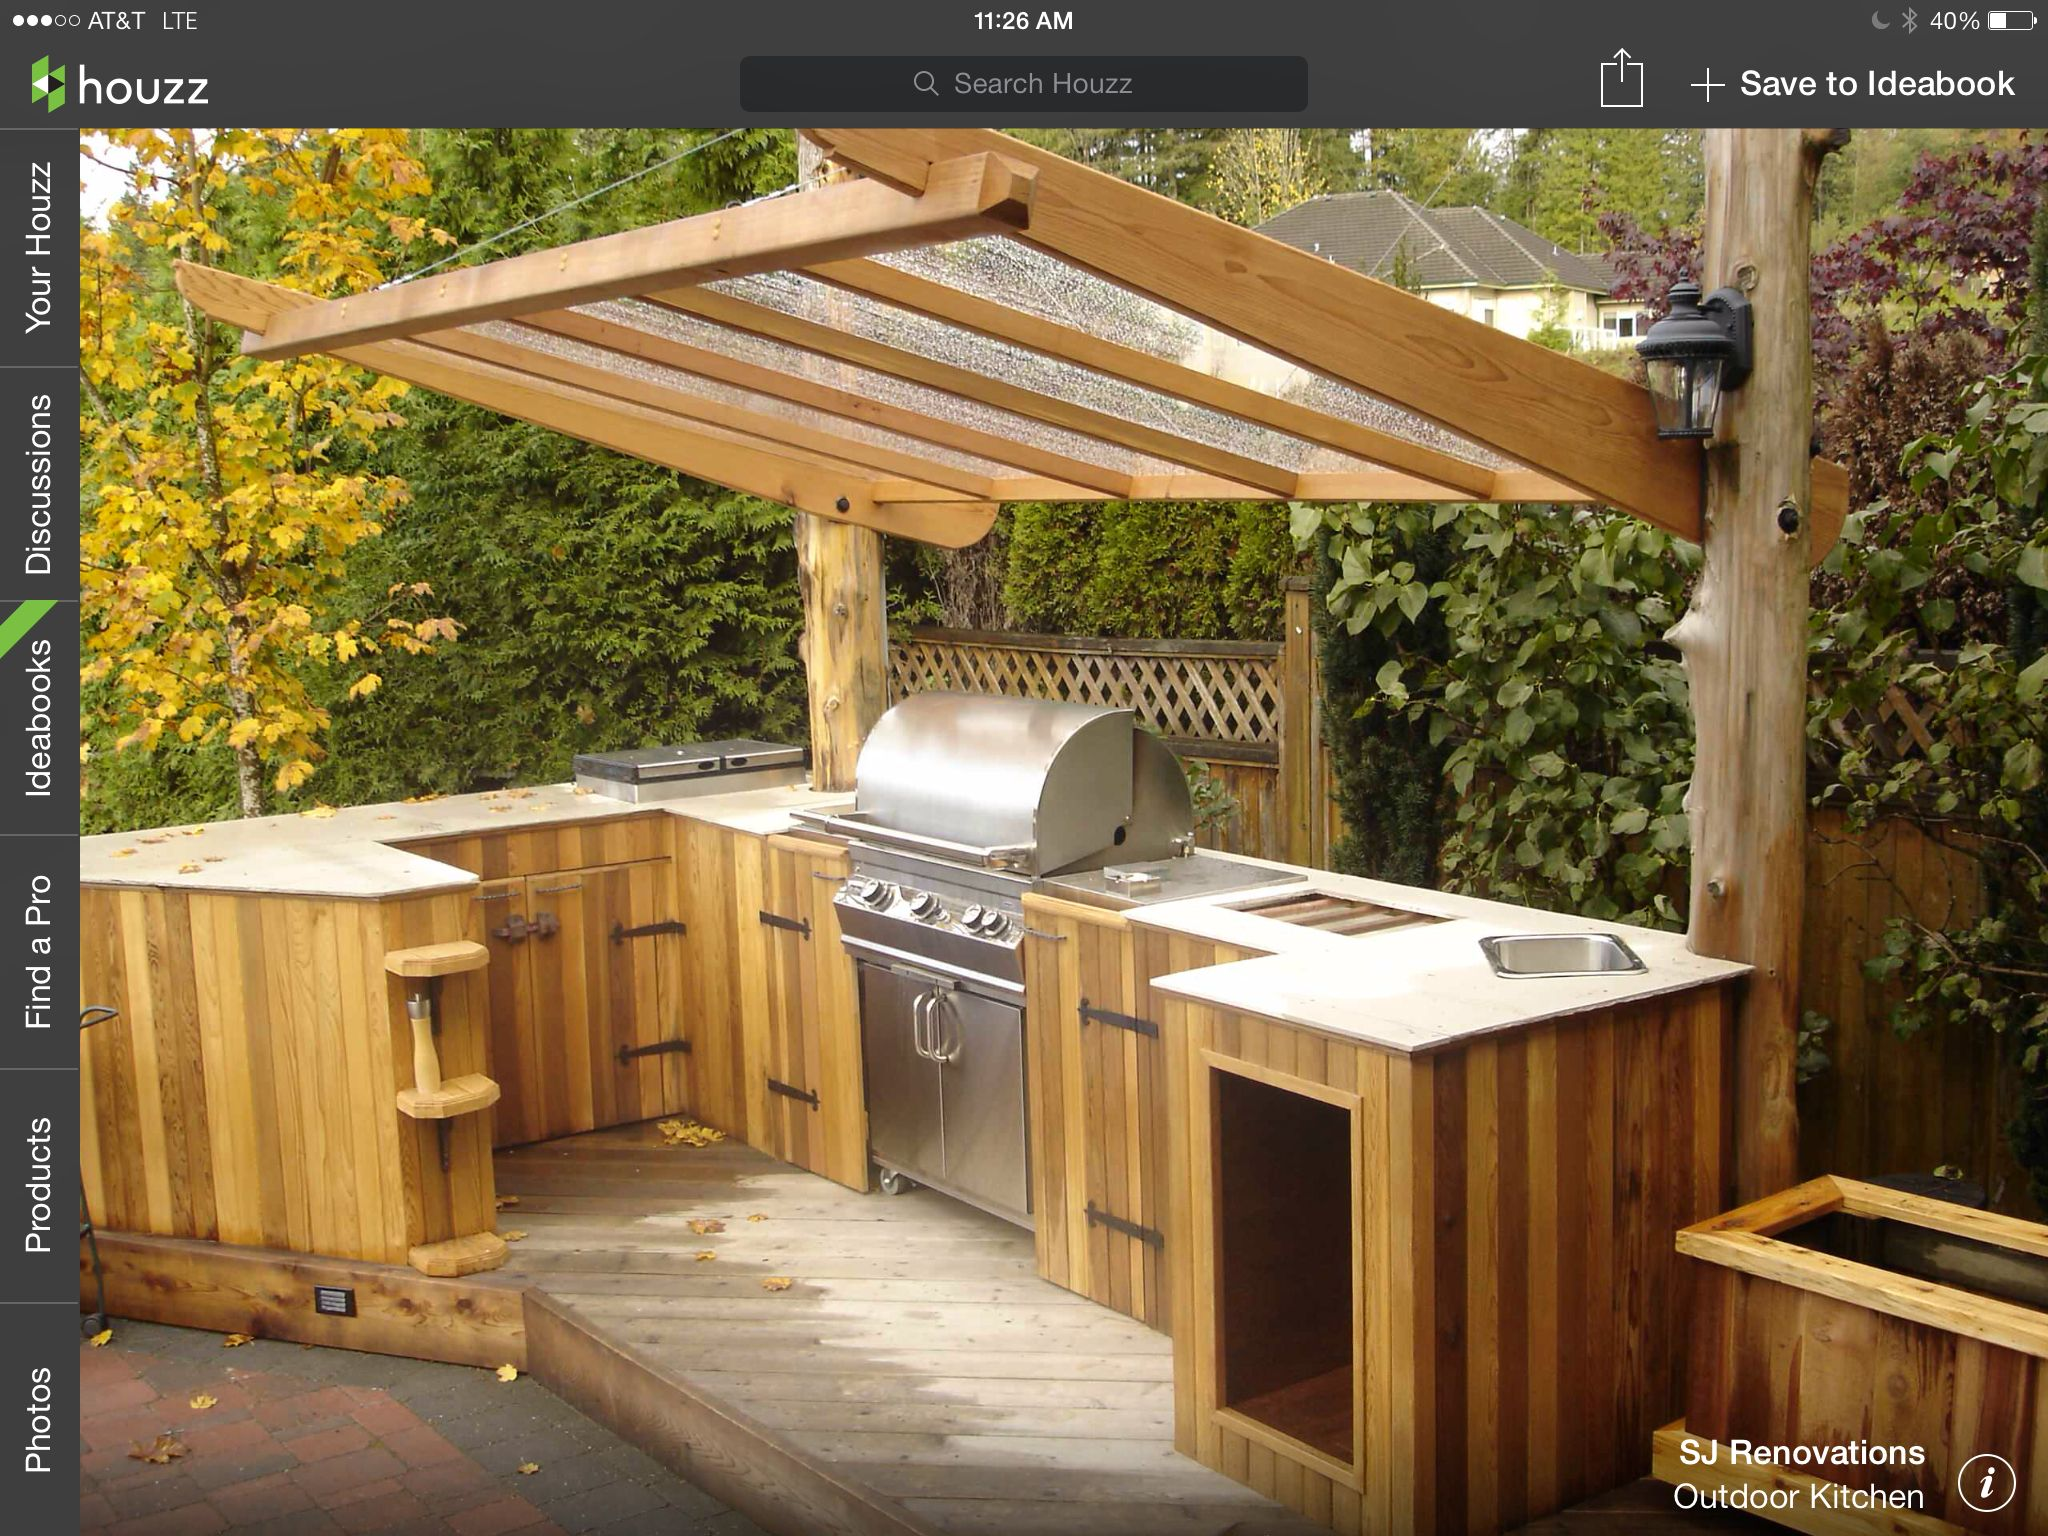 Simple outdoor kitchen hmmmm wood in South Florida ...